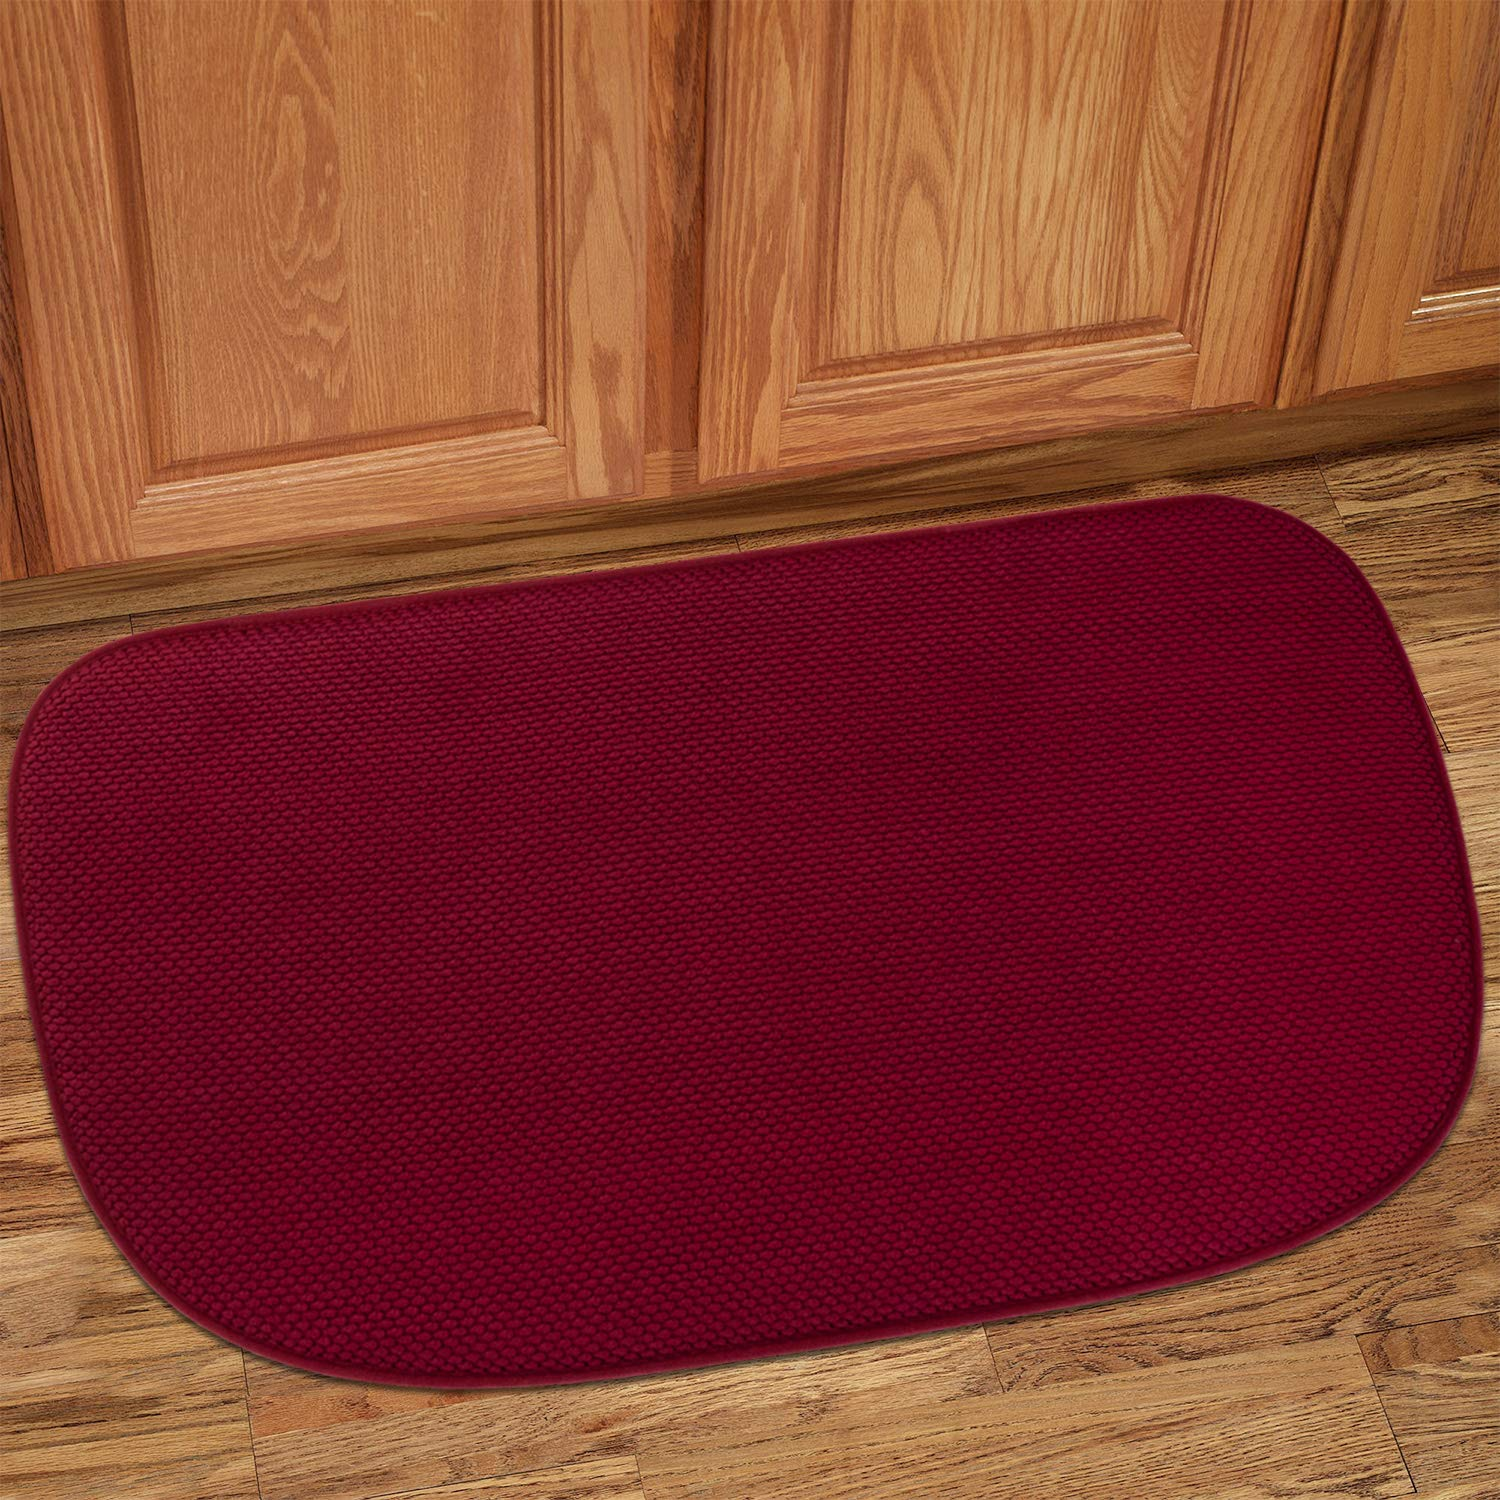 Sweet Home Collection Kitchen Rug Memory Foam Honeycomb Slip Non Skid Soft Comfortable Anti Fatigue Floor Mat, 30'' x 18'', Wine Burgundy by Sweet Home Collection